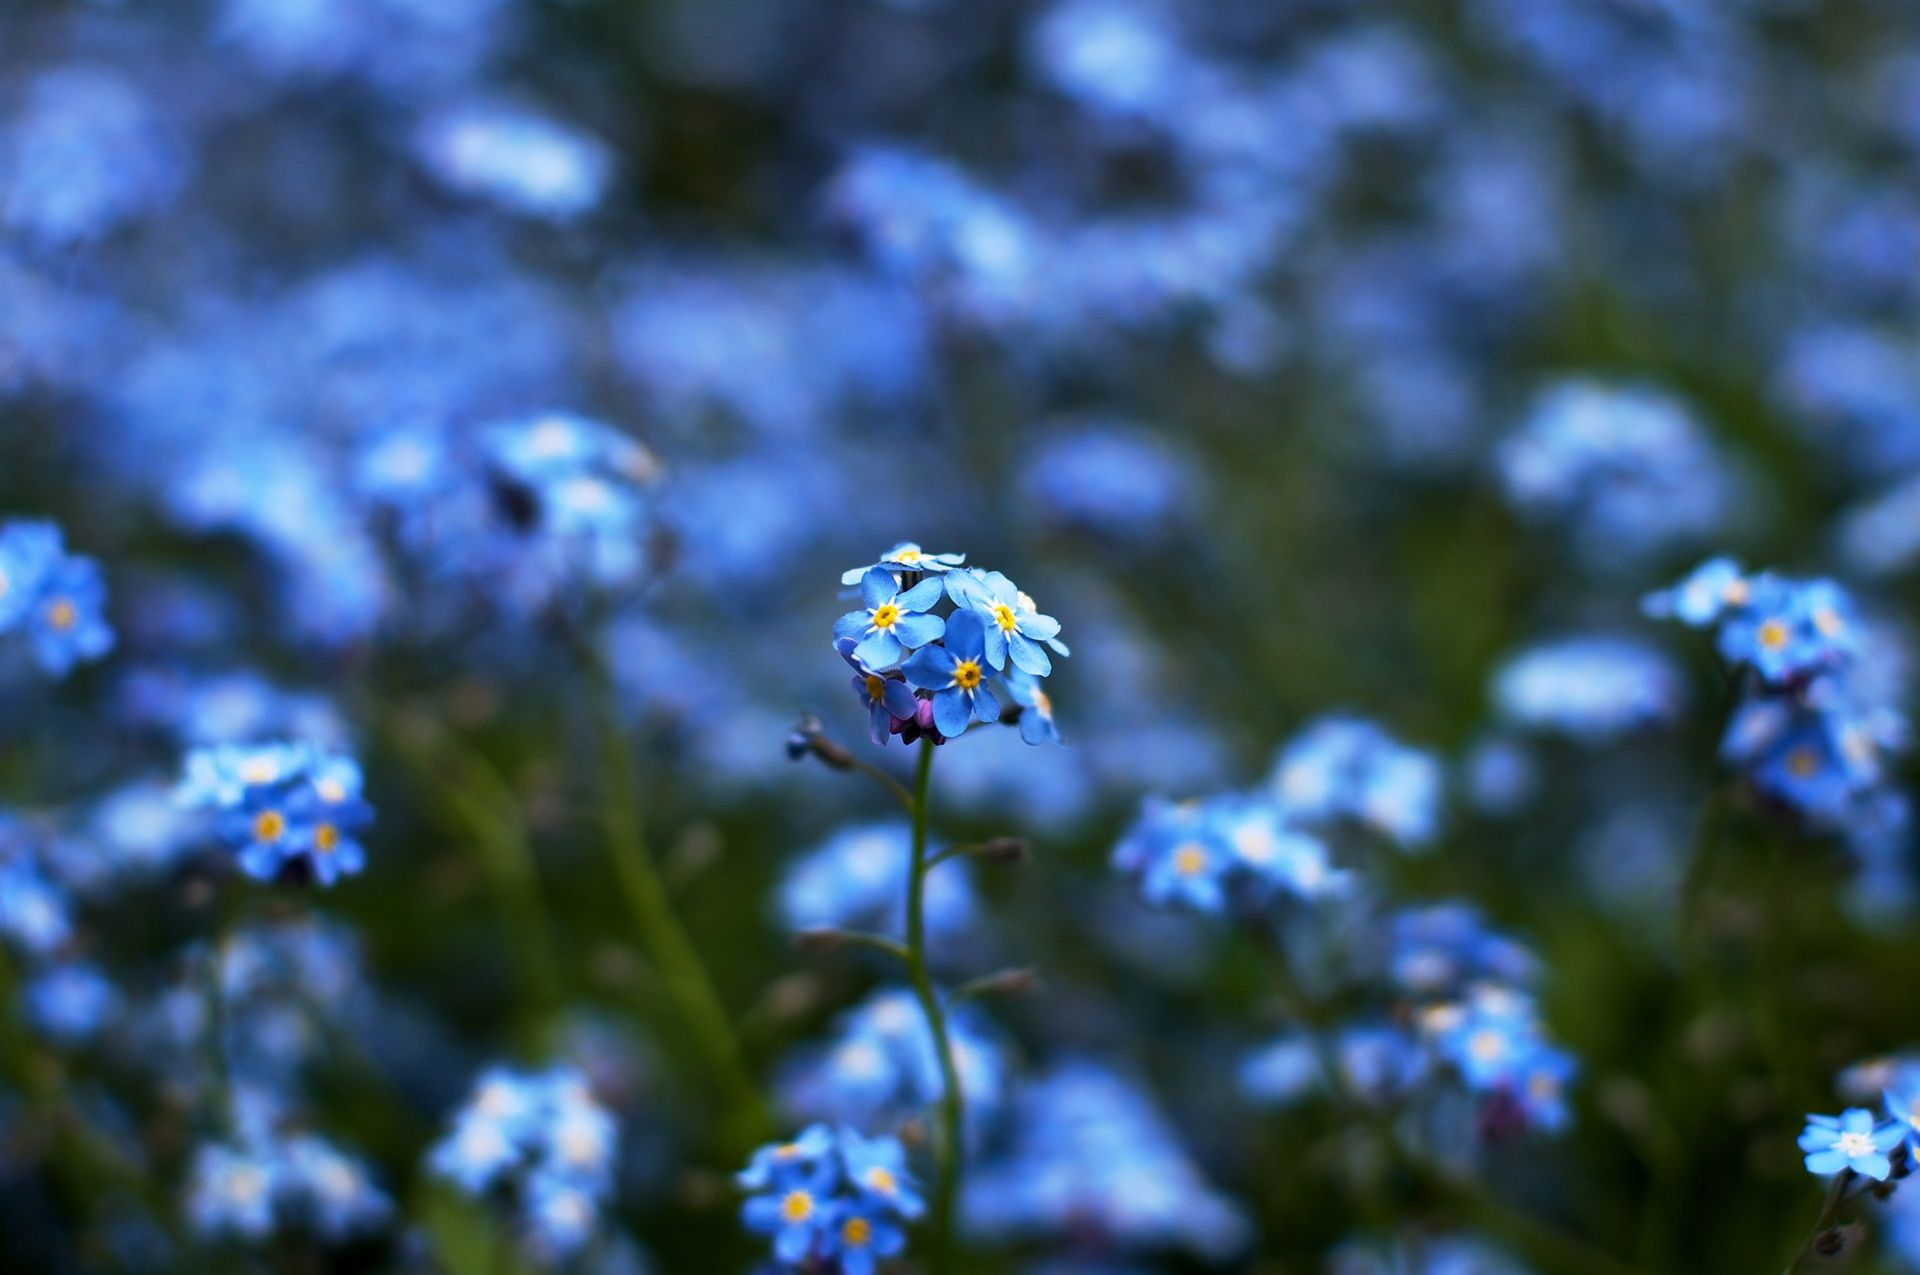 #bokeh, #yellow, #blur, #focus, #Blue, #color, #green, #nature, #flowers